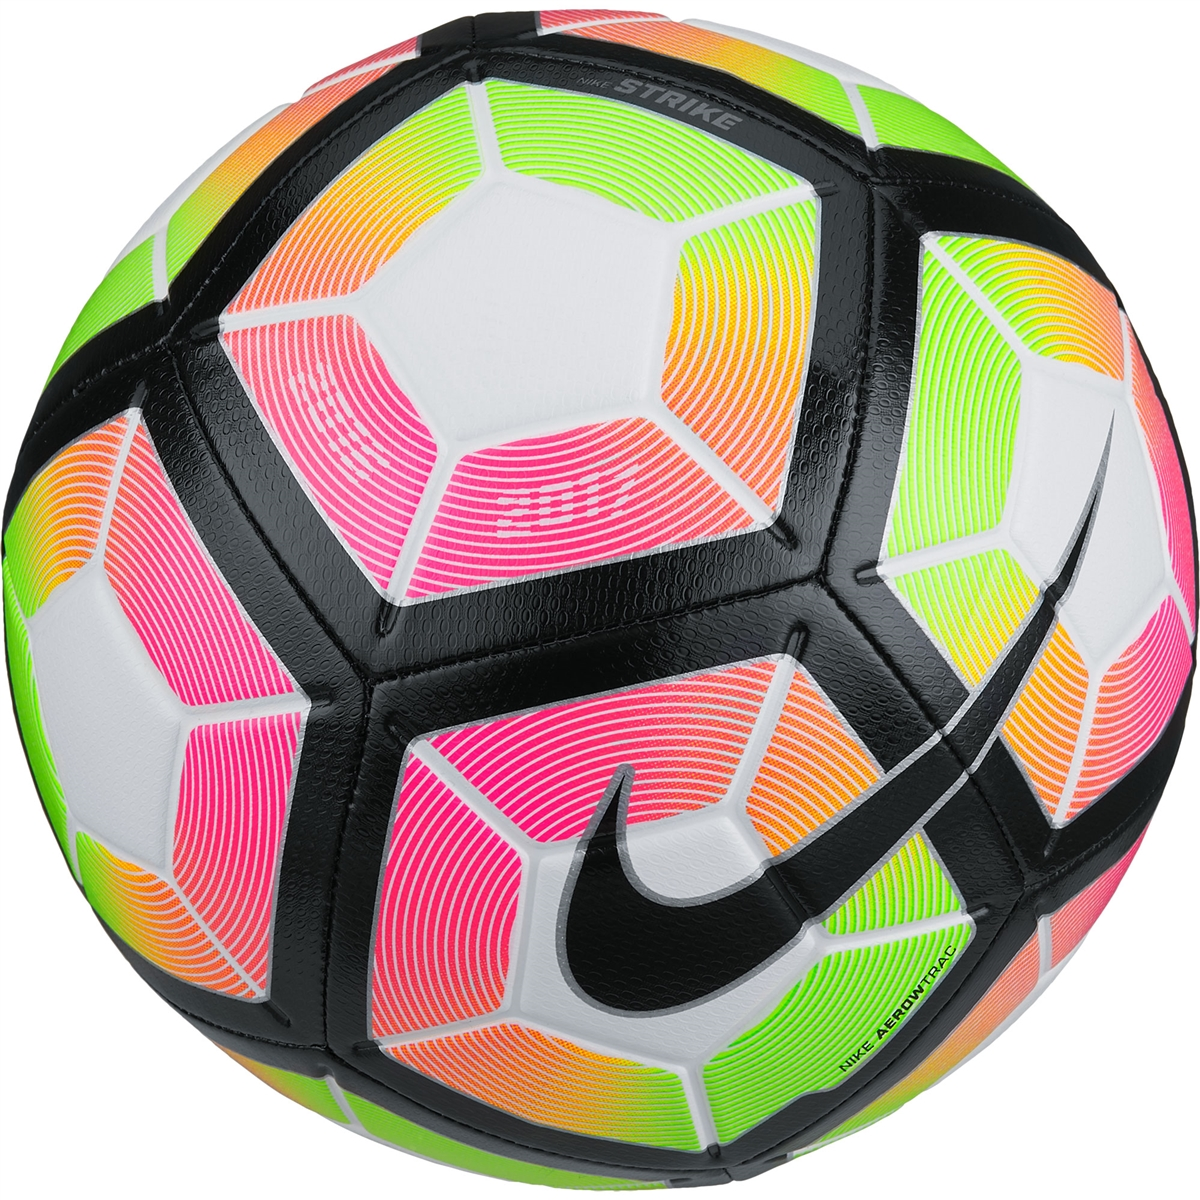 1200x1200 Adult ~ Nike Pitch Team Soccer Ball Whiteblack Sc Nike Pictures